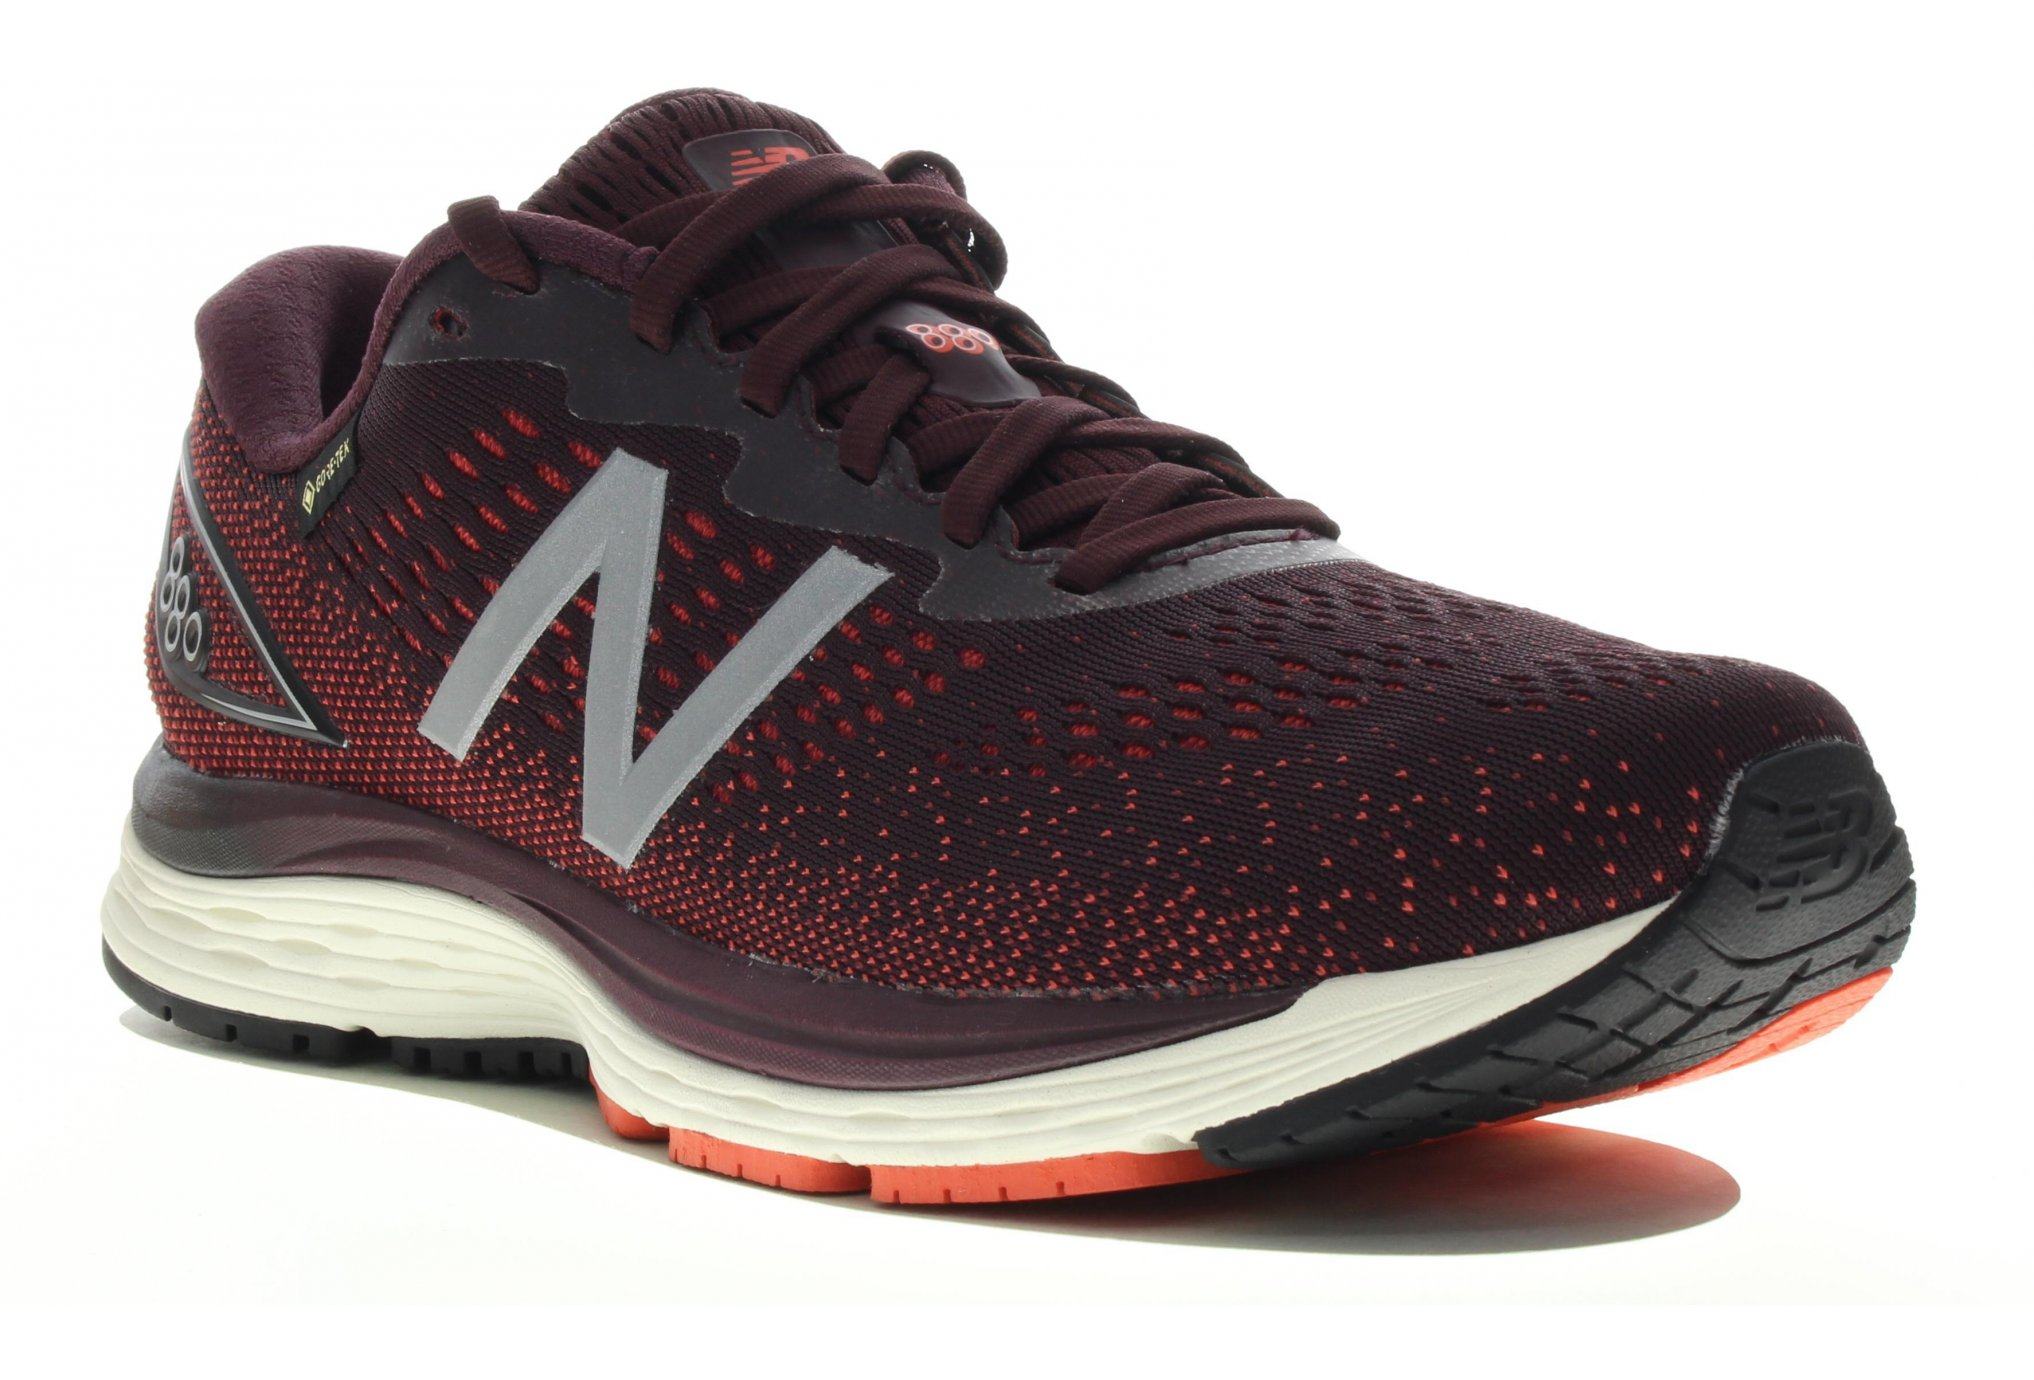 New Balance M 880 V9 Gore-Tex Chaussures homme